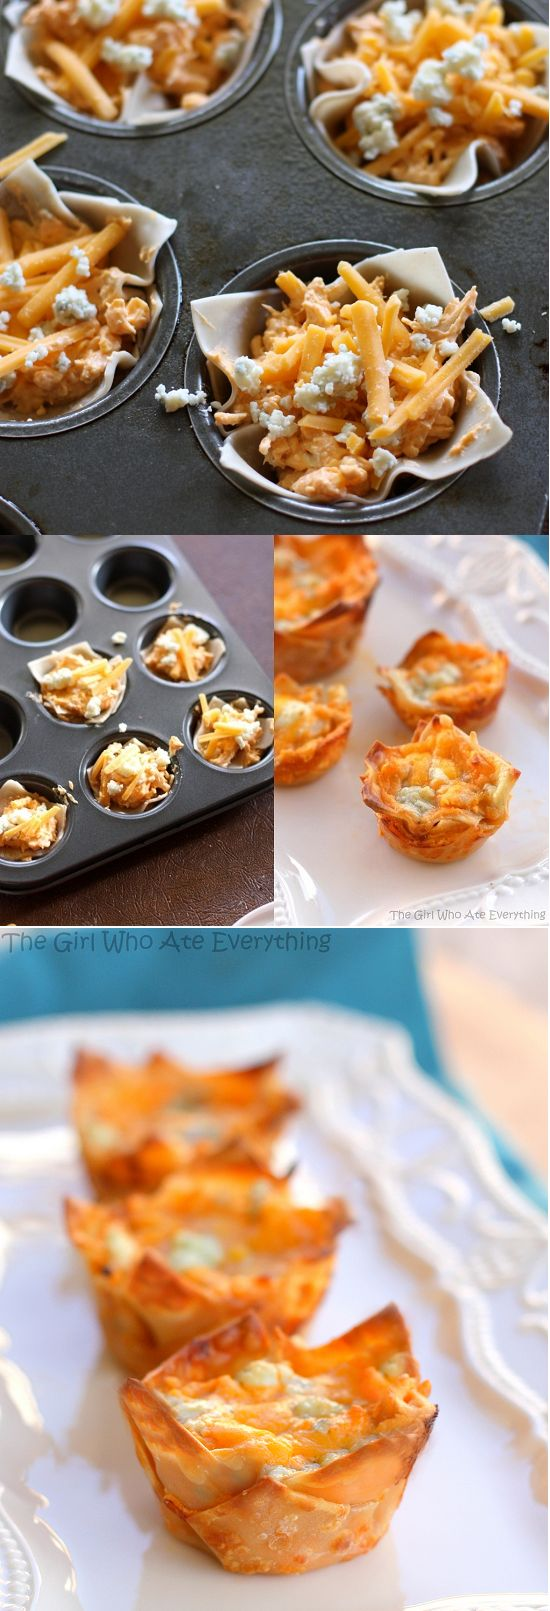 Buffalo Chicken Cups #appetizer #gameday #wings